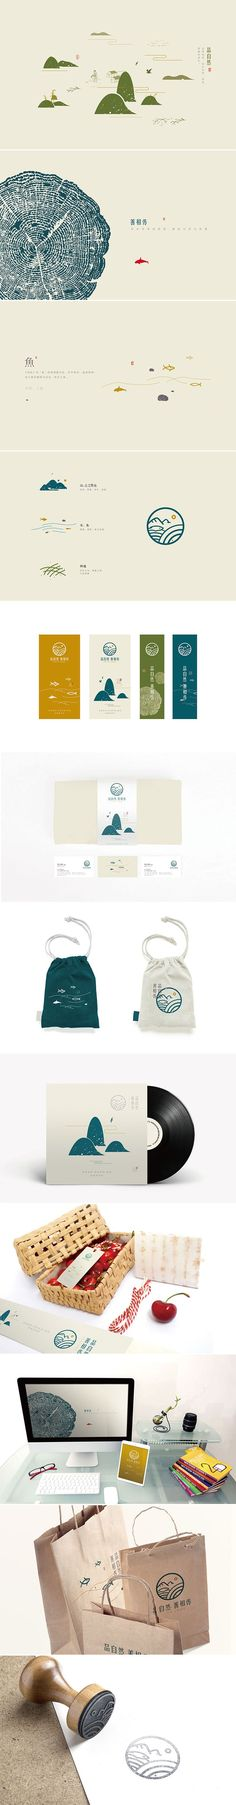 66 Ideas For Eye Logo Design Ideas Color Palettes Corporate Design, Graphic Design Branding, Identity Design, Typography Design, Packaging Design, Brand Identity, Chinese Typography, Corporate Identity, Graphisches Design